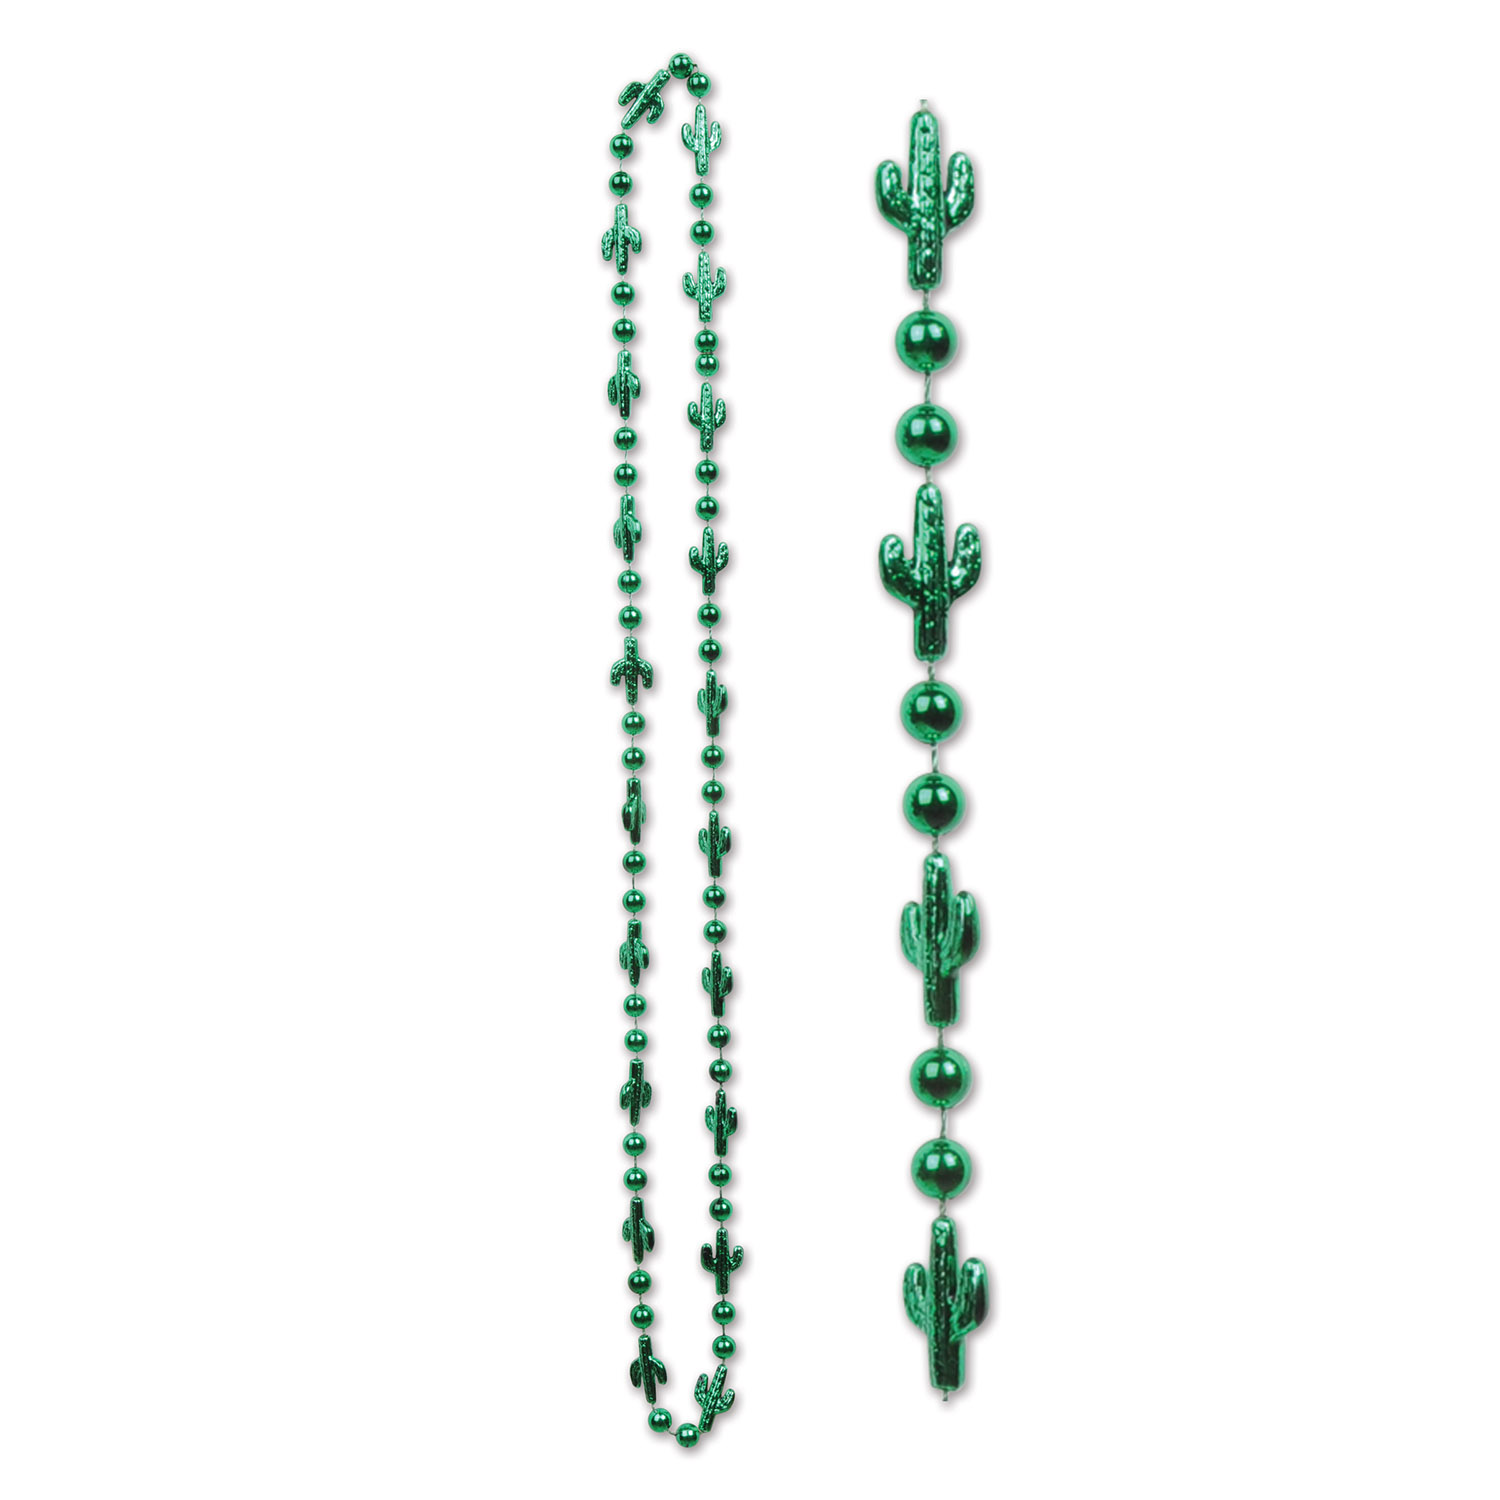 beads with green cactus around the necklace in a western theme